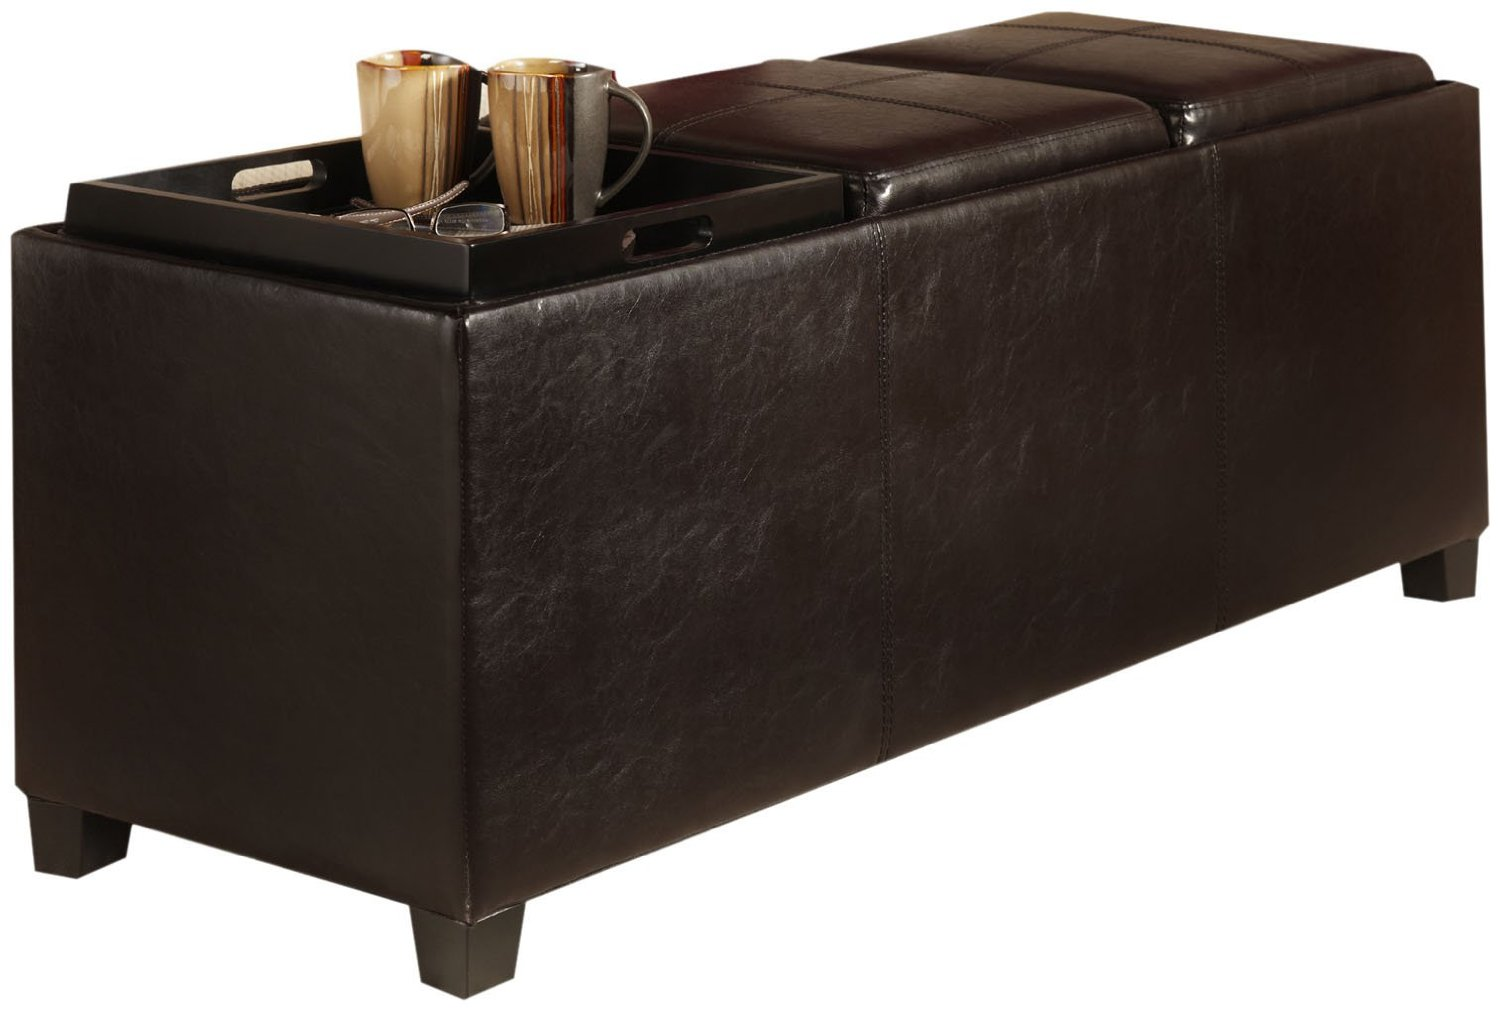 black leather ottoman with black large ottoman tray for home furniture ideas